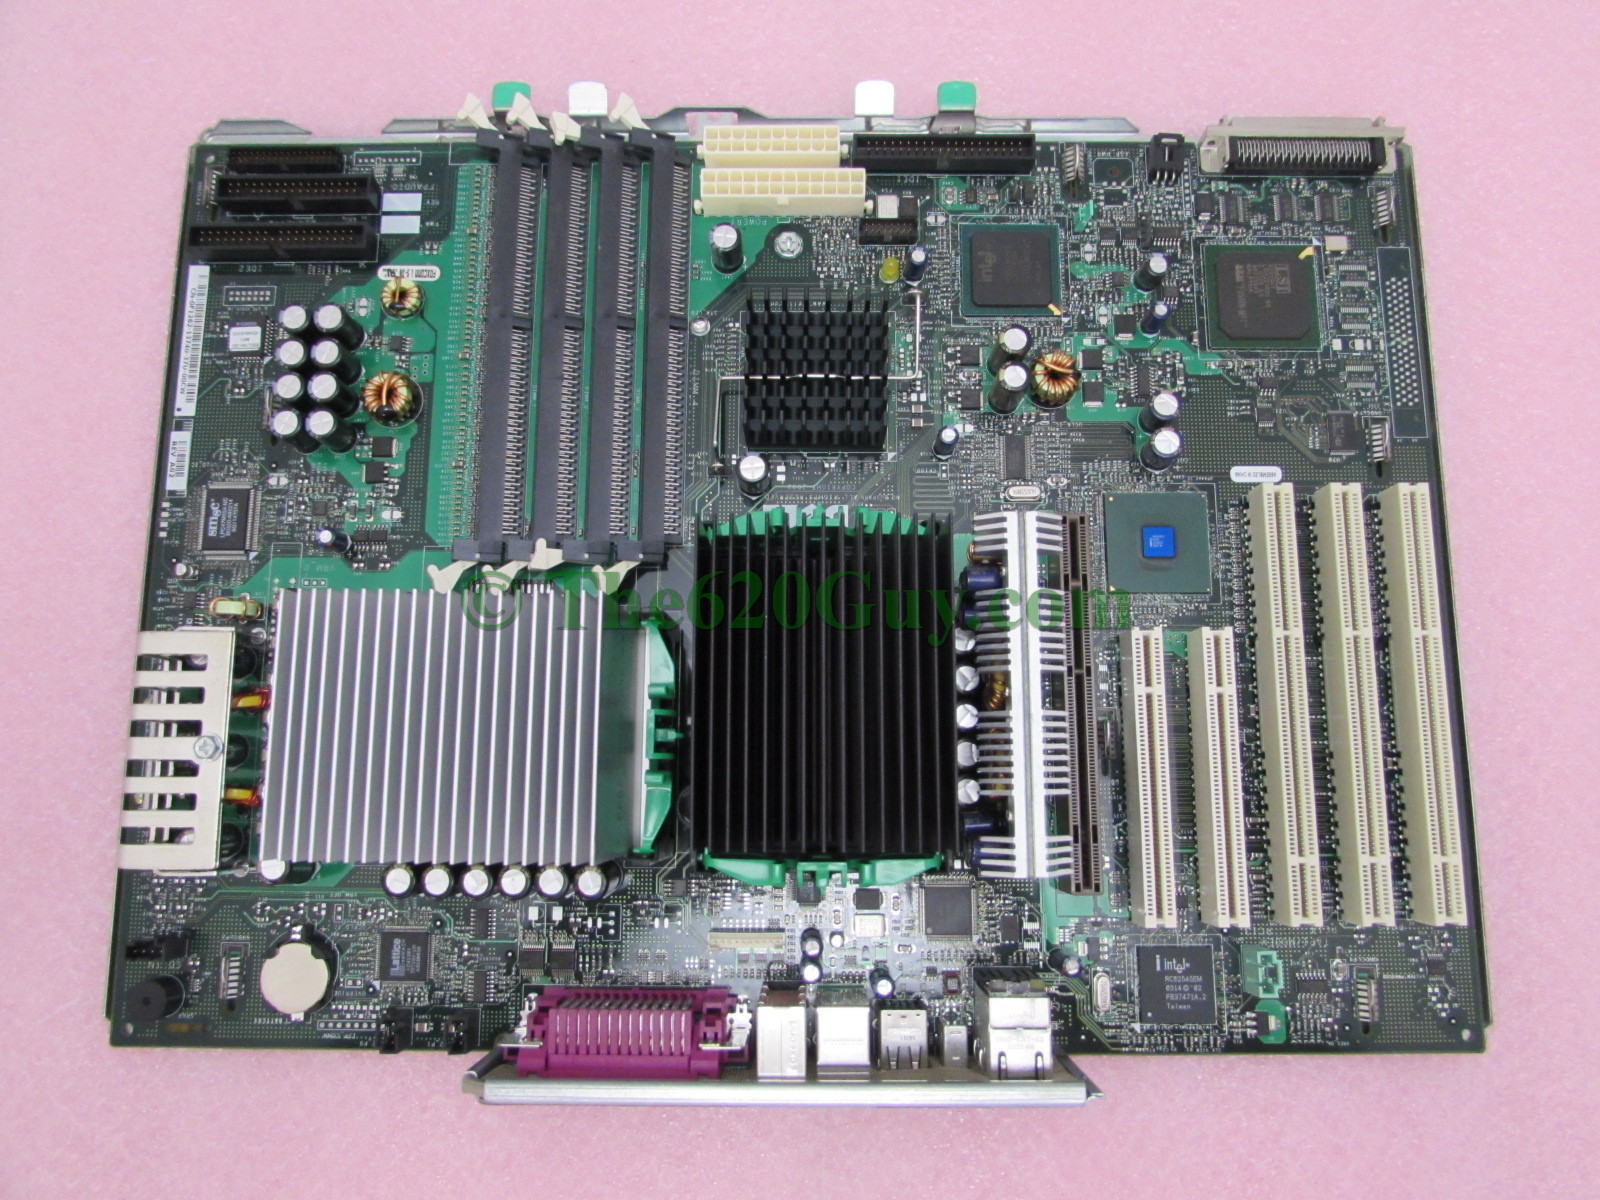 DELL PRECISION  WORKSTATION 650 MOTHER BOARD  DUAL CPU SOCKET F1262 02K812